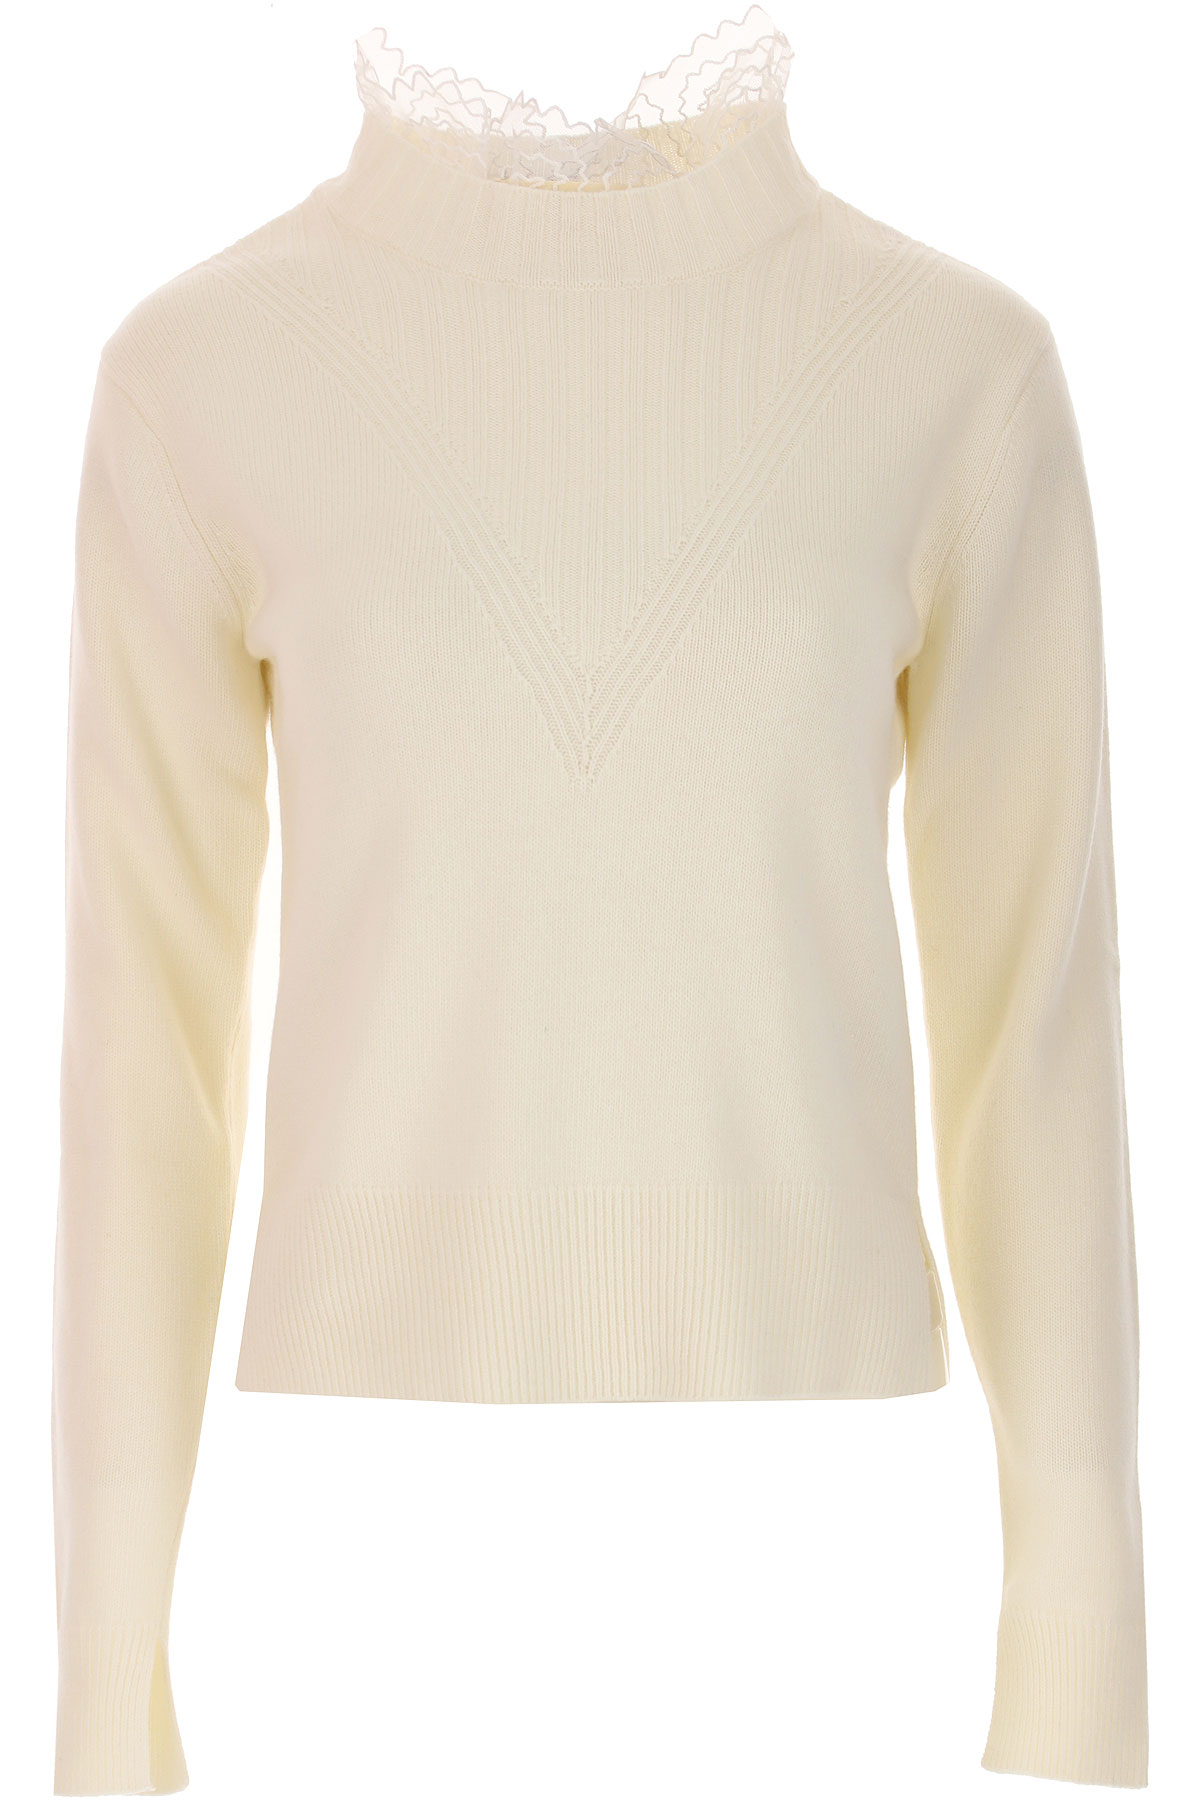 See By Chloe Sweater for Women Jumper, White, Wool, 2019, 2 4 6 8